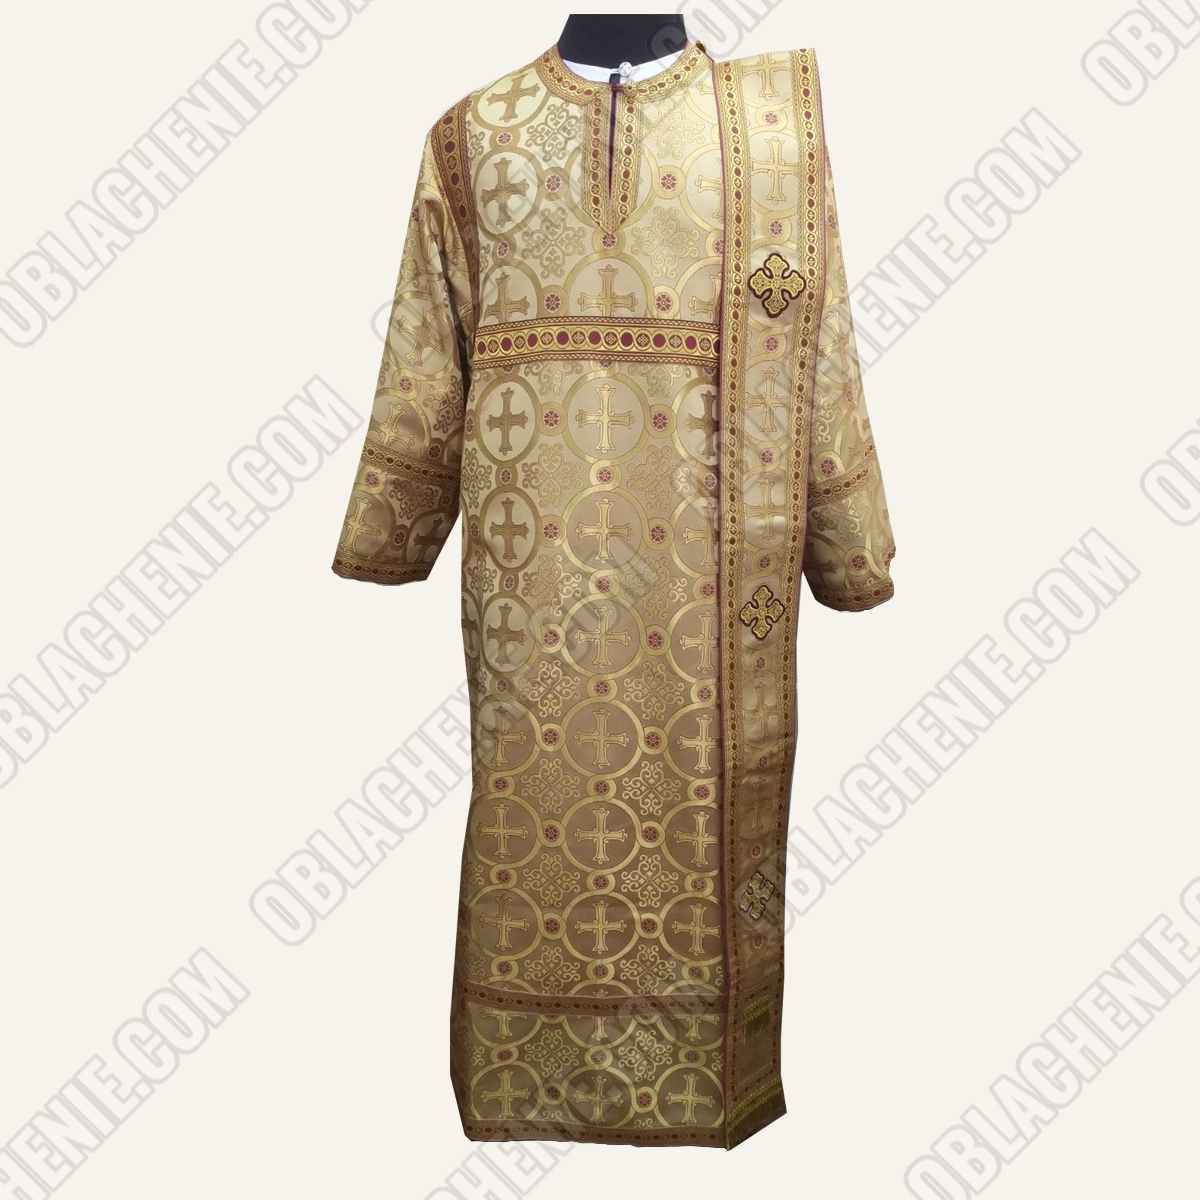 DEACON'S VESTMENTS 11091